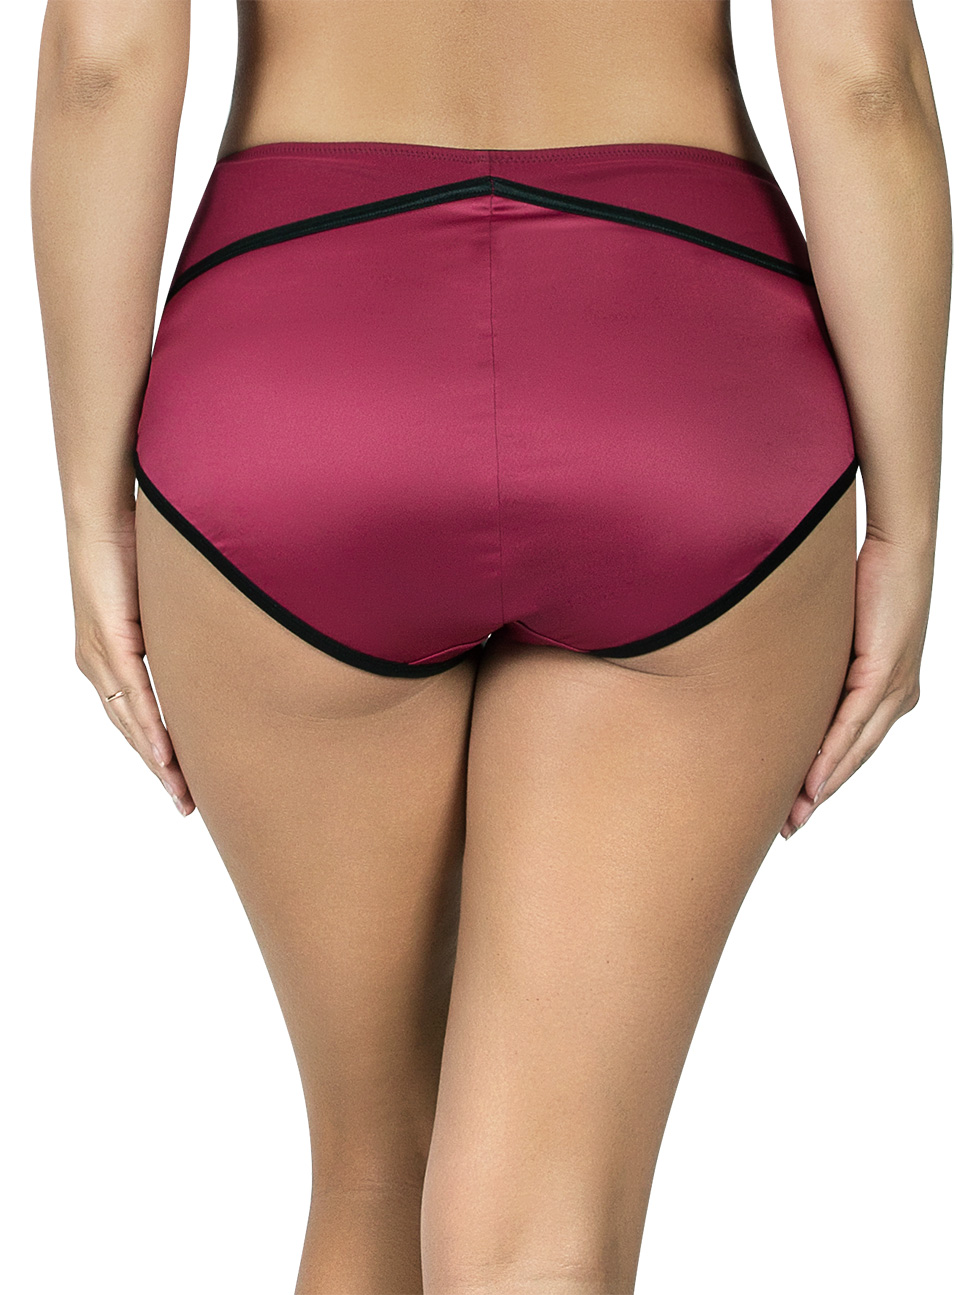 PARFAIT Charlotte HighwaistBrief6917 RioRed Back - Charlotte Highwaist Brief Rio Red 6917